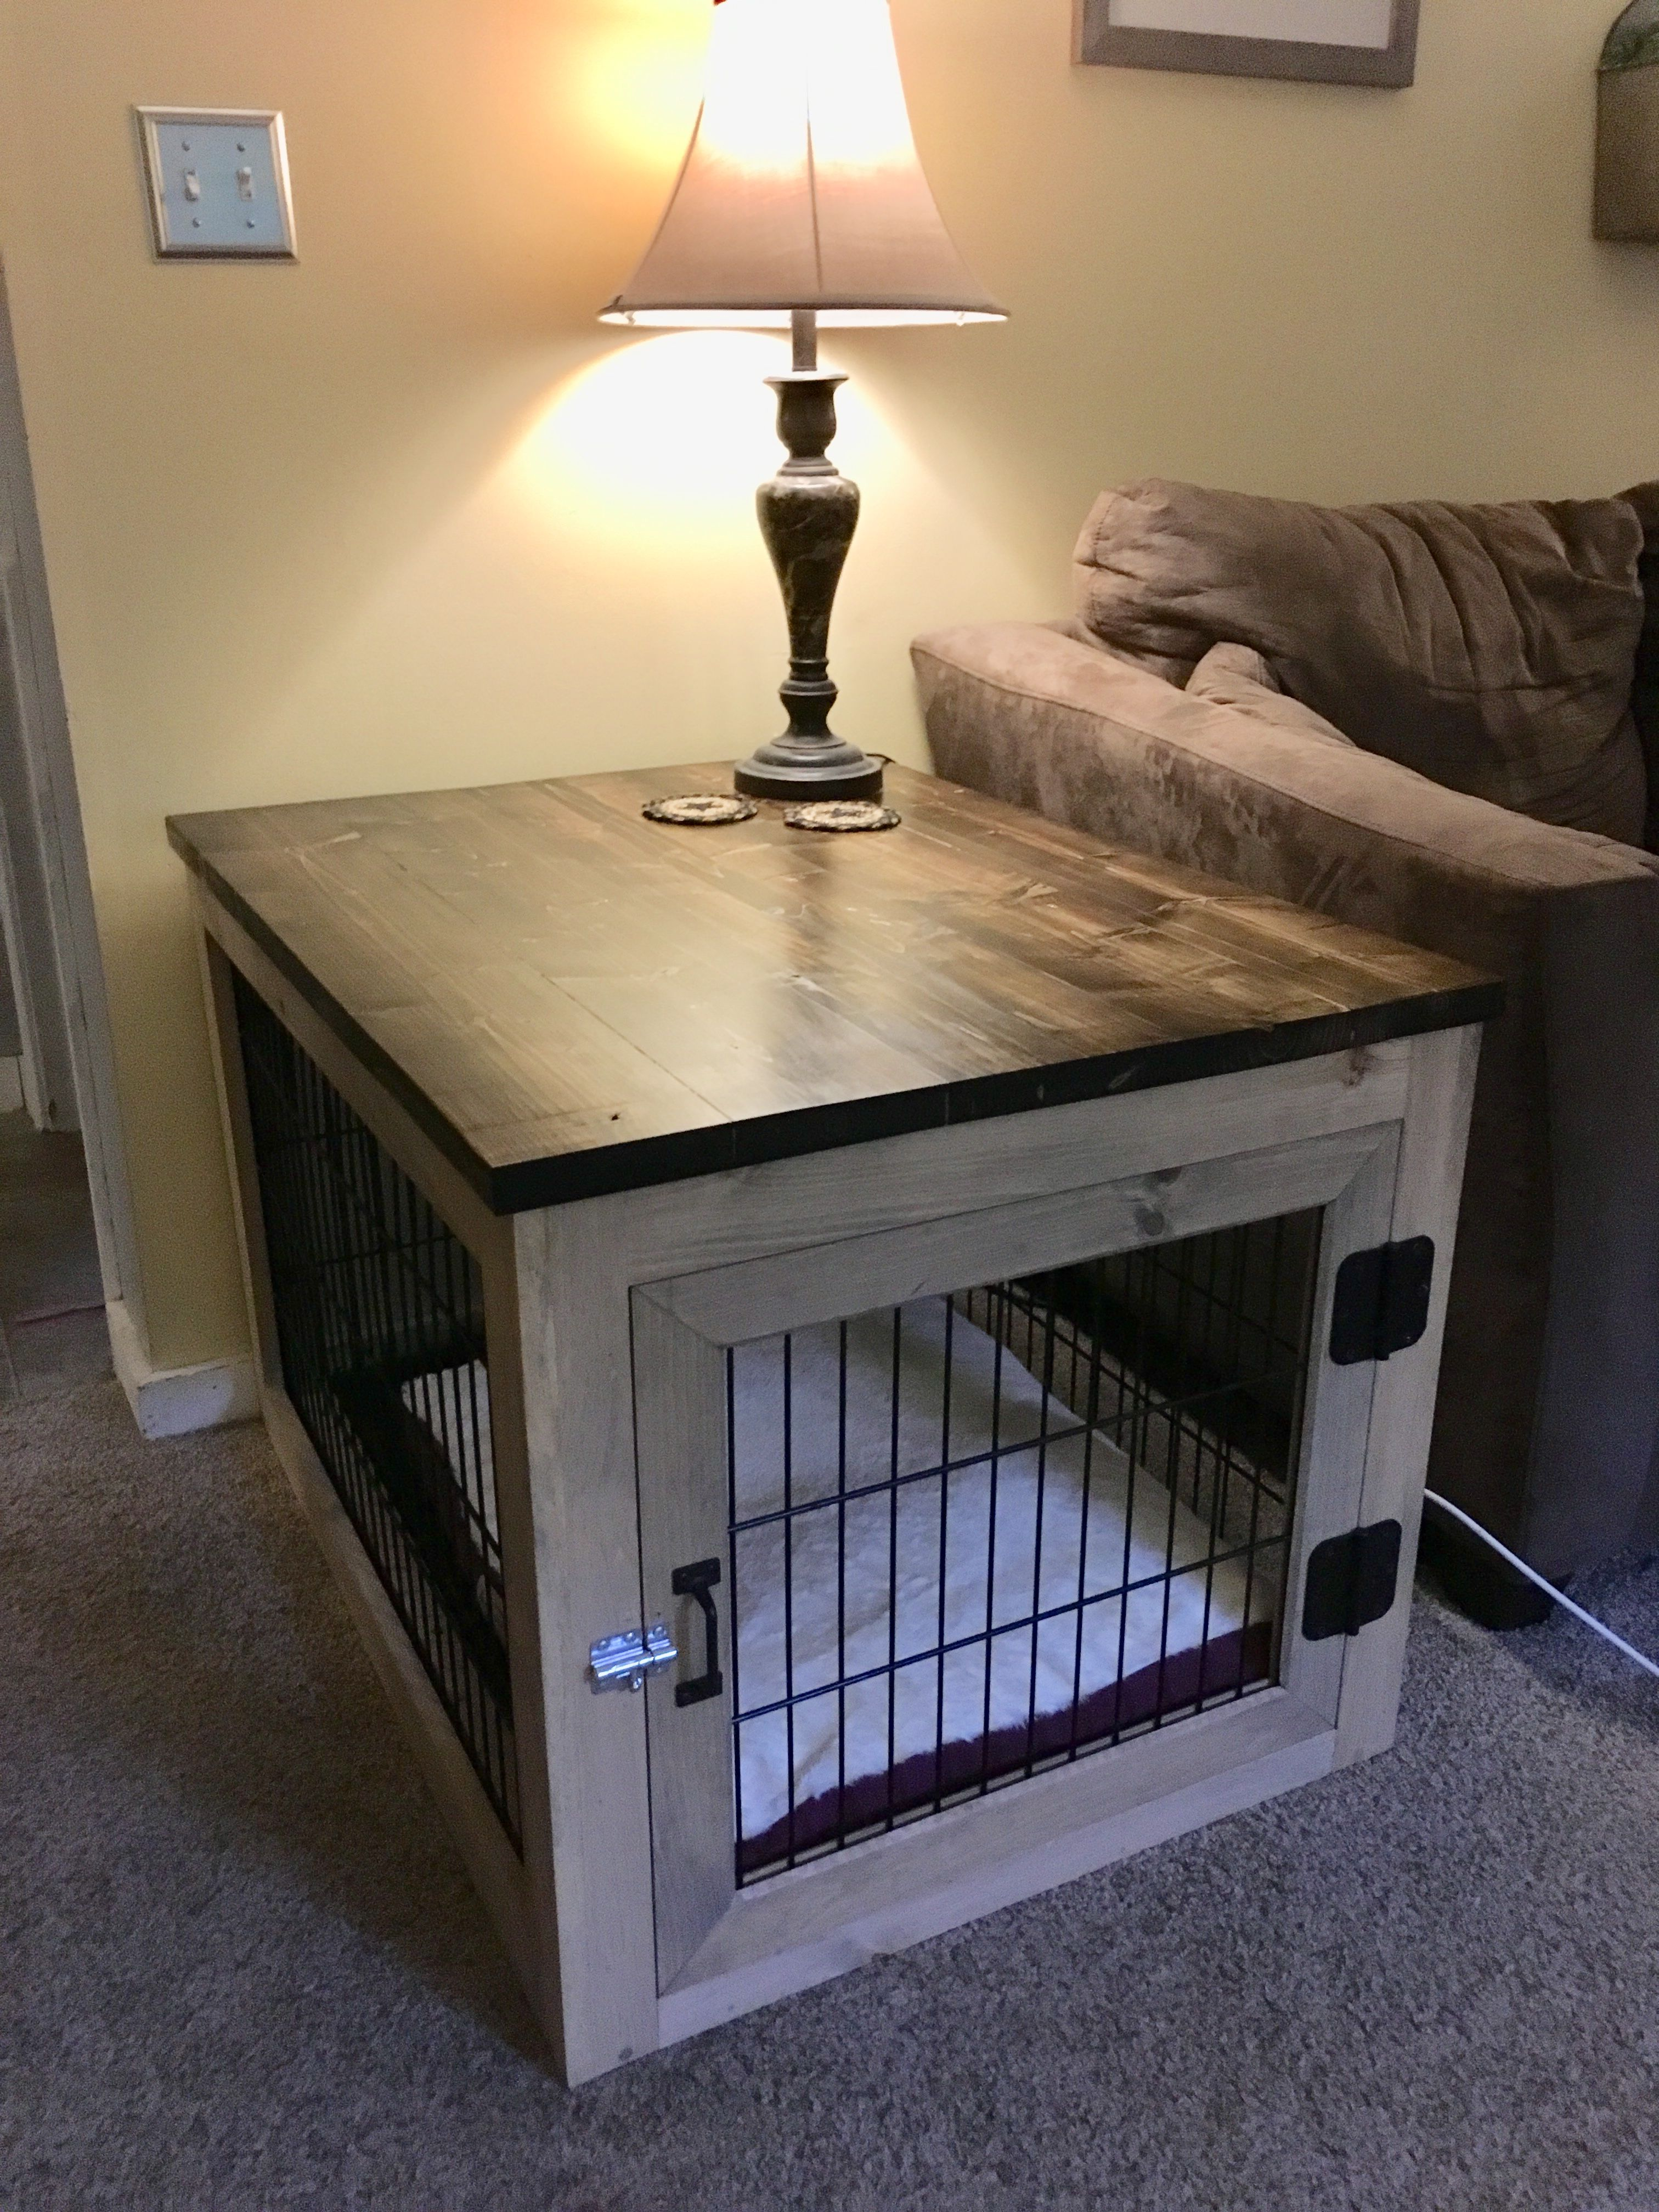 Diy Dog Crate End Table Break Down An Old Wire Crate With -3918